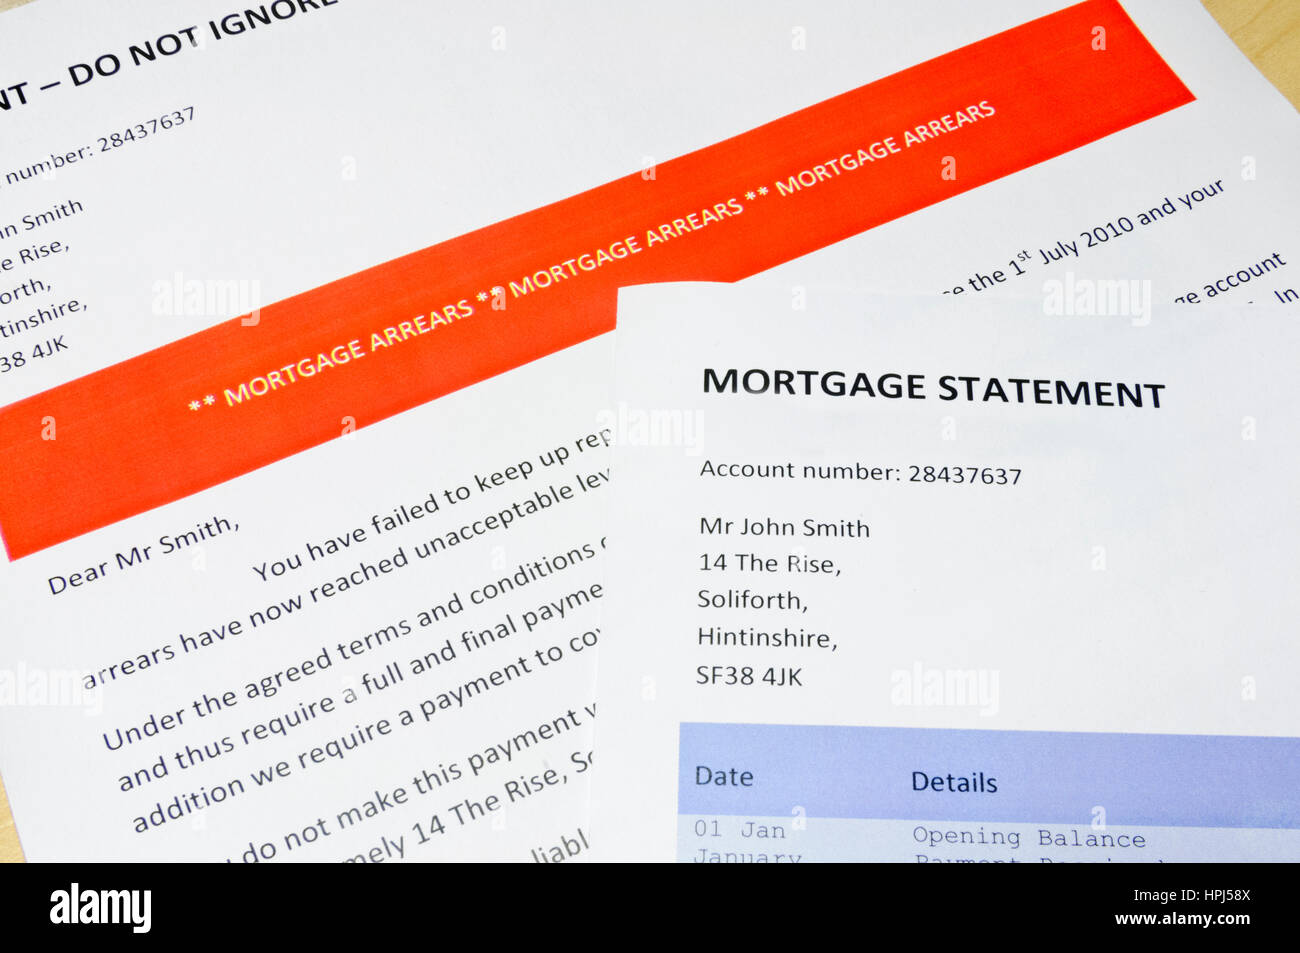 Bank letter informing customer of Mortgage Arrears and repossession  with statement showing 'Defaulted'/non - Stock Image